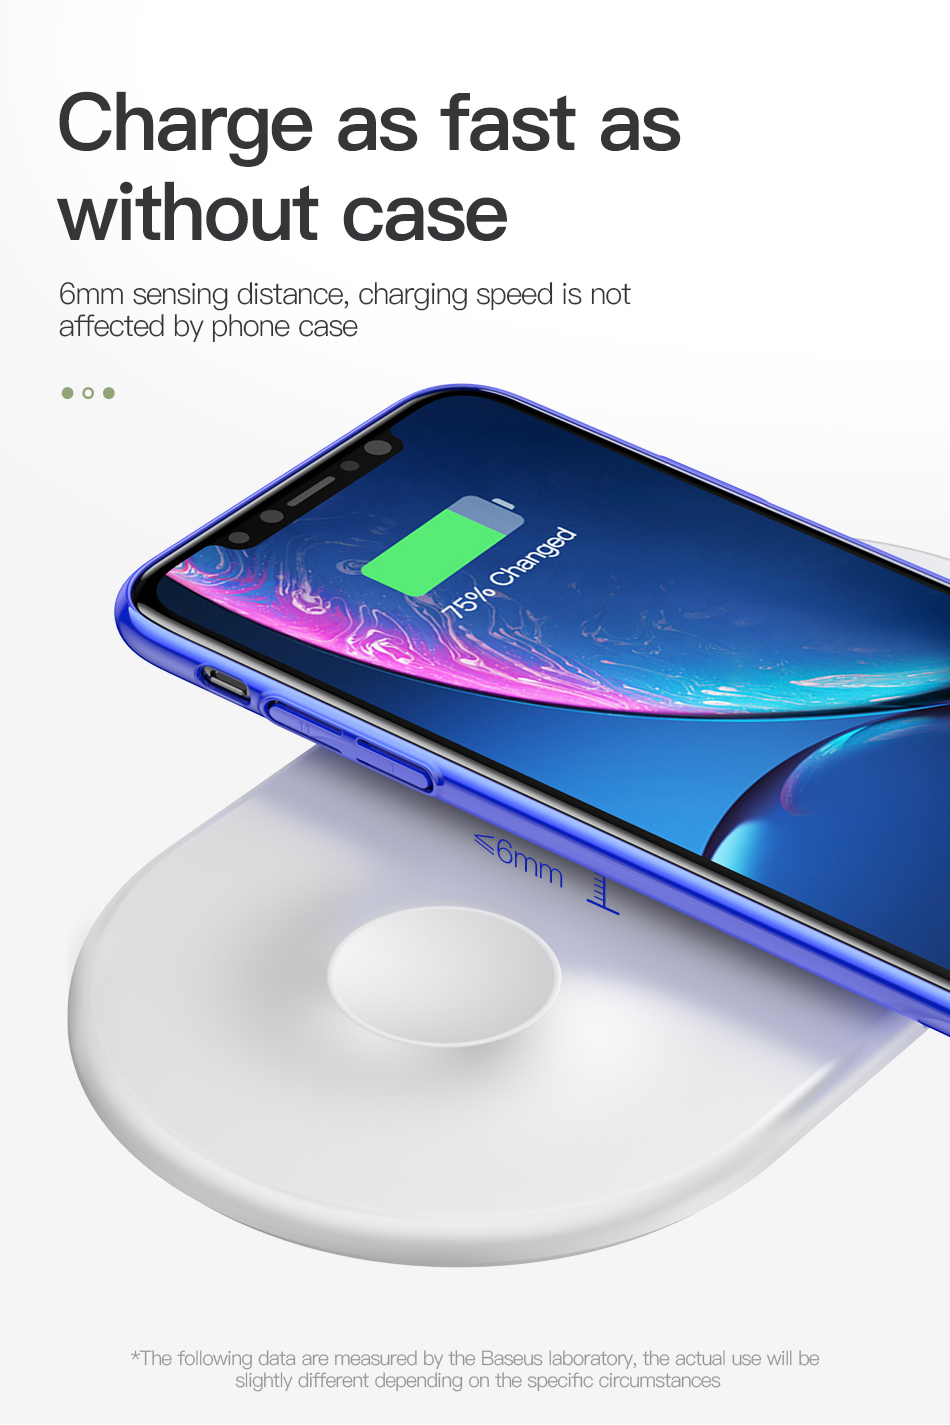 Baseus 2 In 1 Wireless Charger For Iphone X Xs Max Xr Apple Watch 4 Home Key Protector Fingerprint Recognition Ipad Ios 0 12